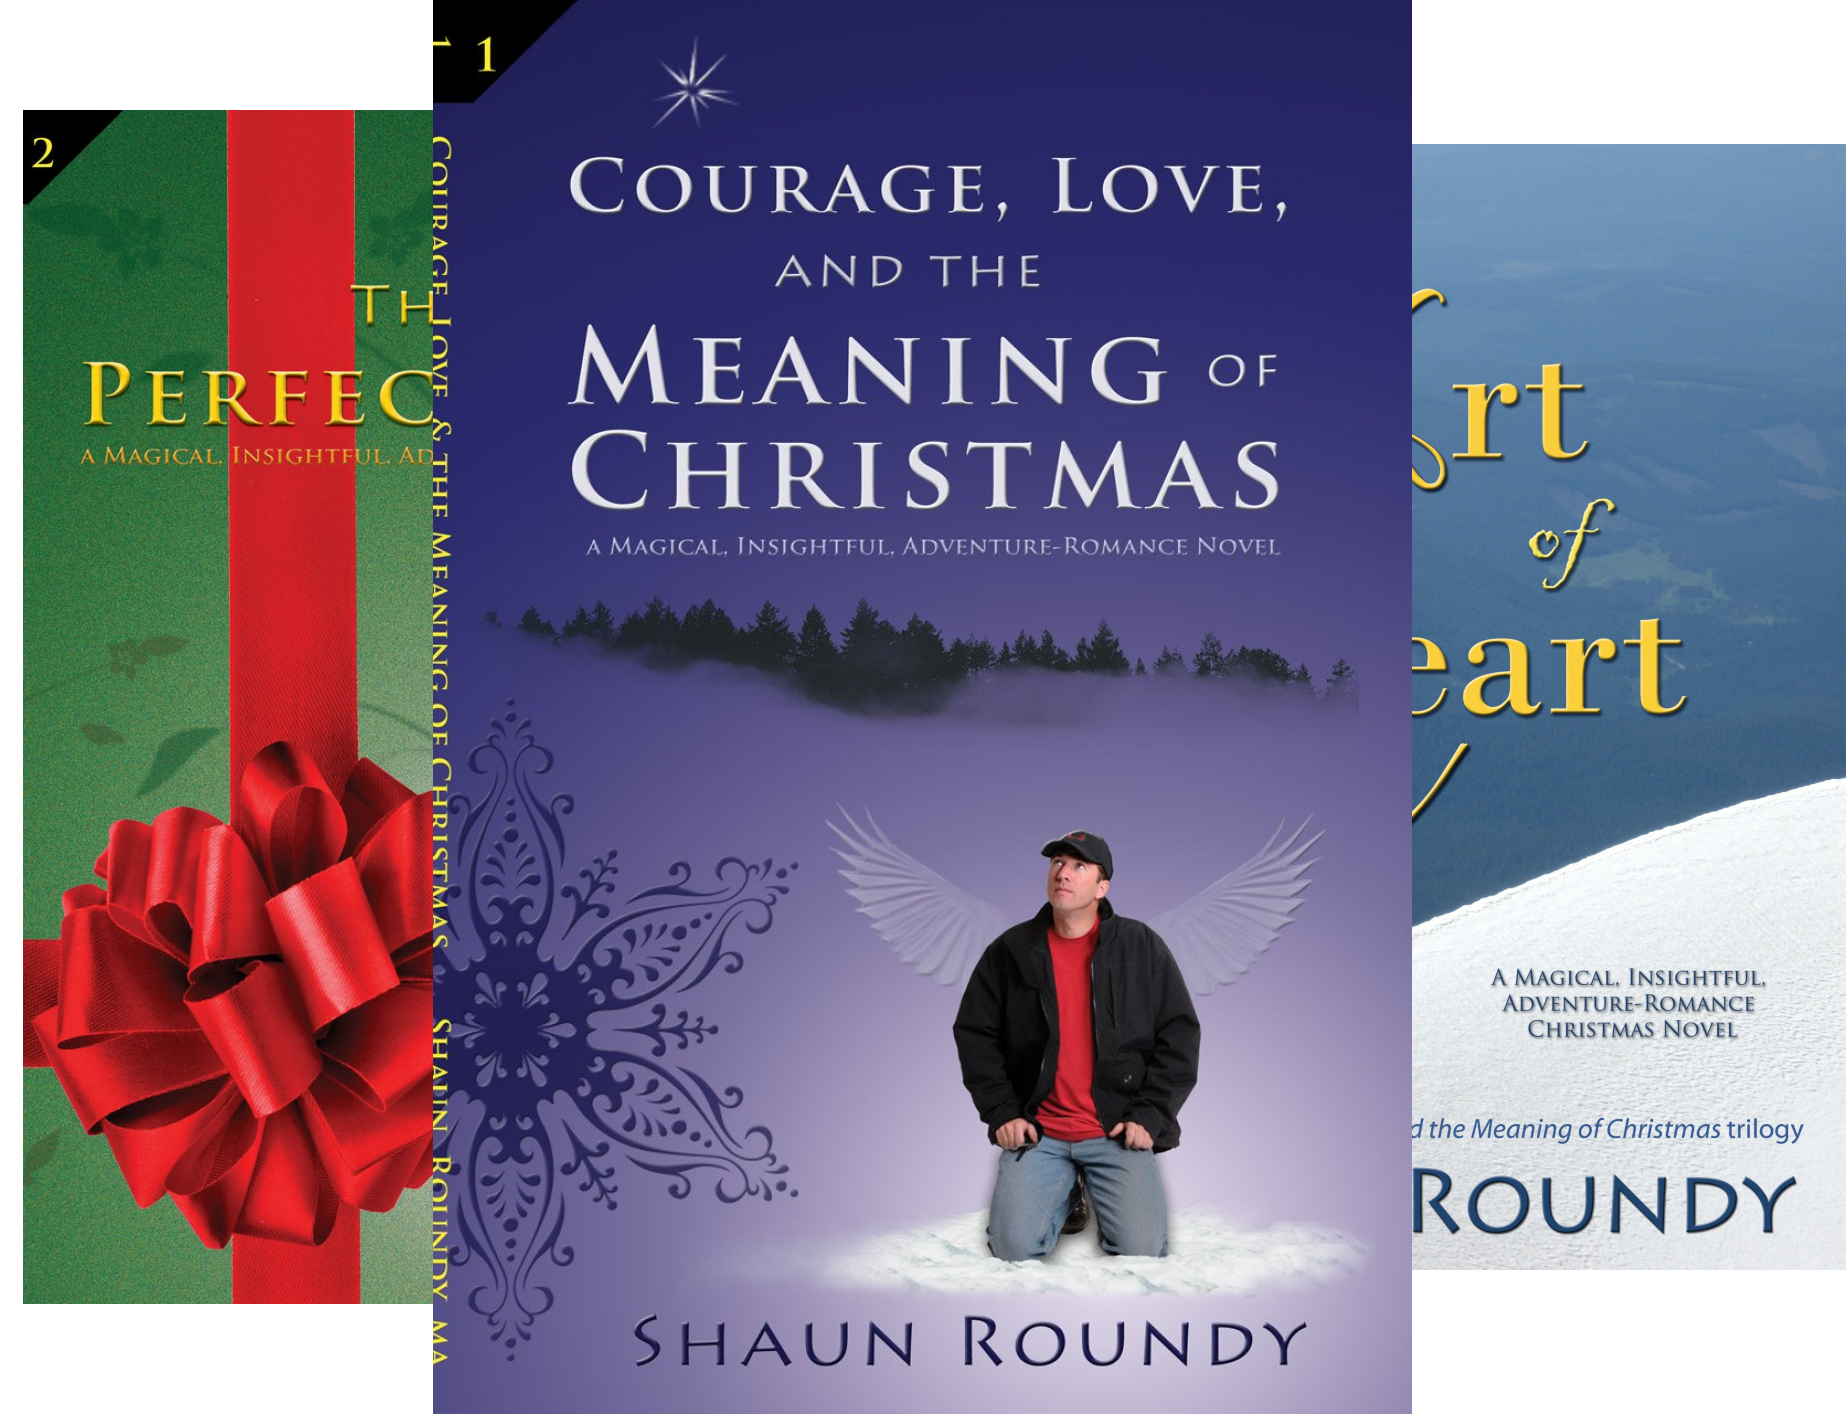 courage-love-and-the-meaning-of-christmas-3-book-series